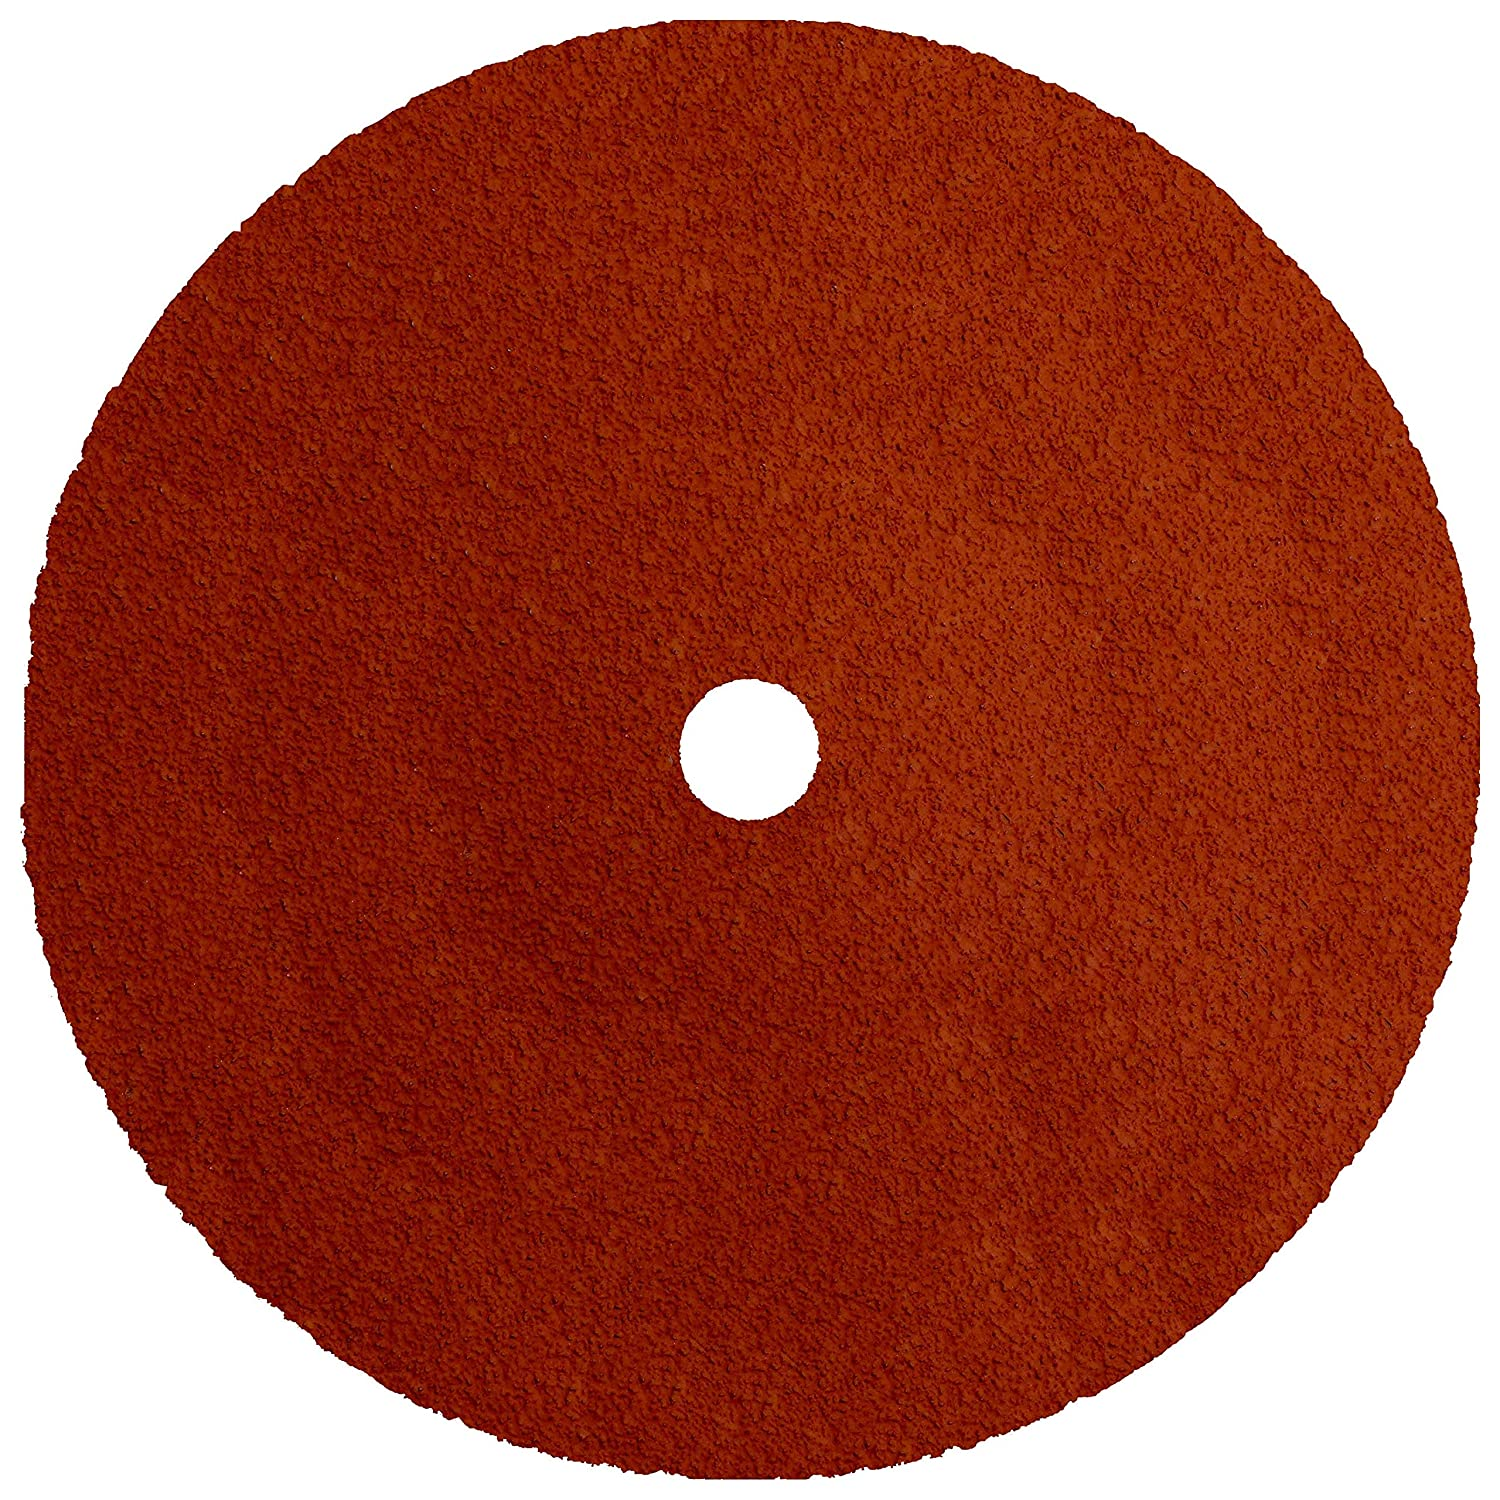 50 Grit Weiler 69873 Tiger Ceramic Alumina Resin Fiber Sanding /& Grinding Disc Pack of 25 9 Diameter 7//8 Arbor Hole,